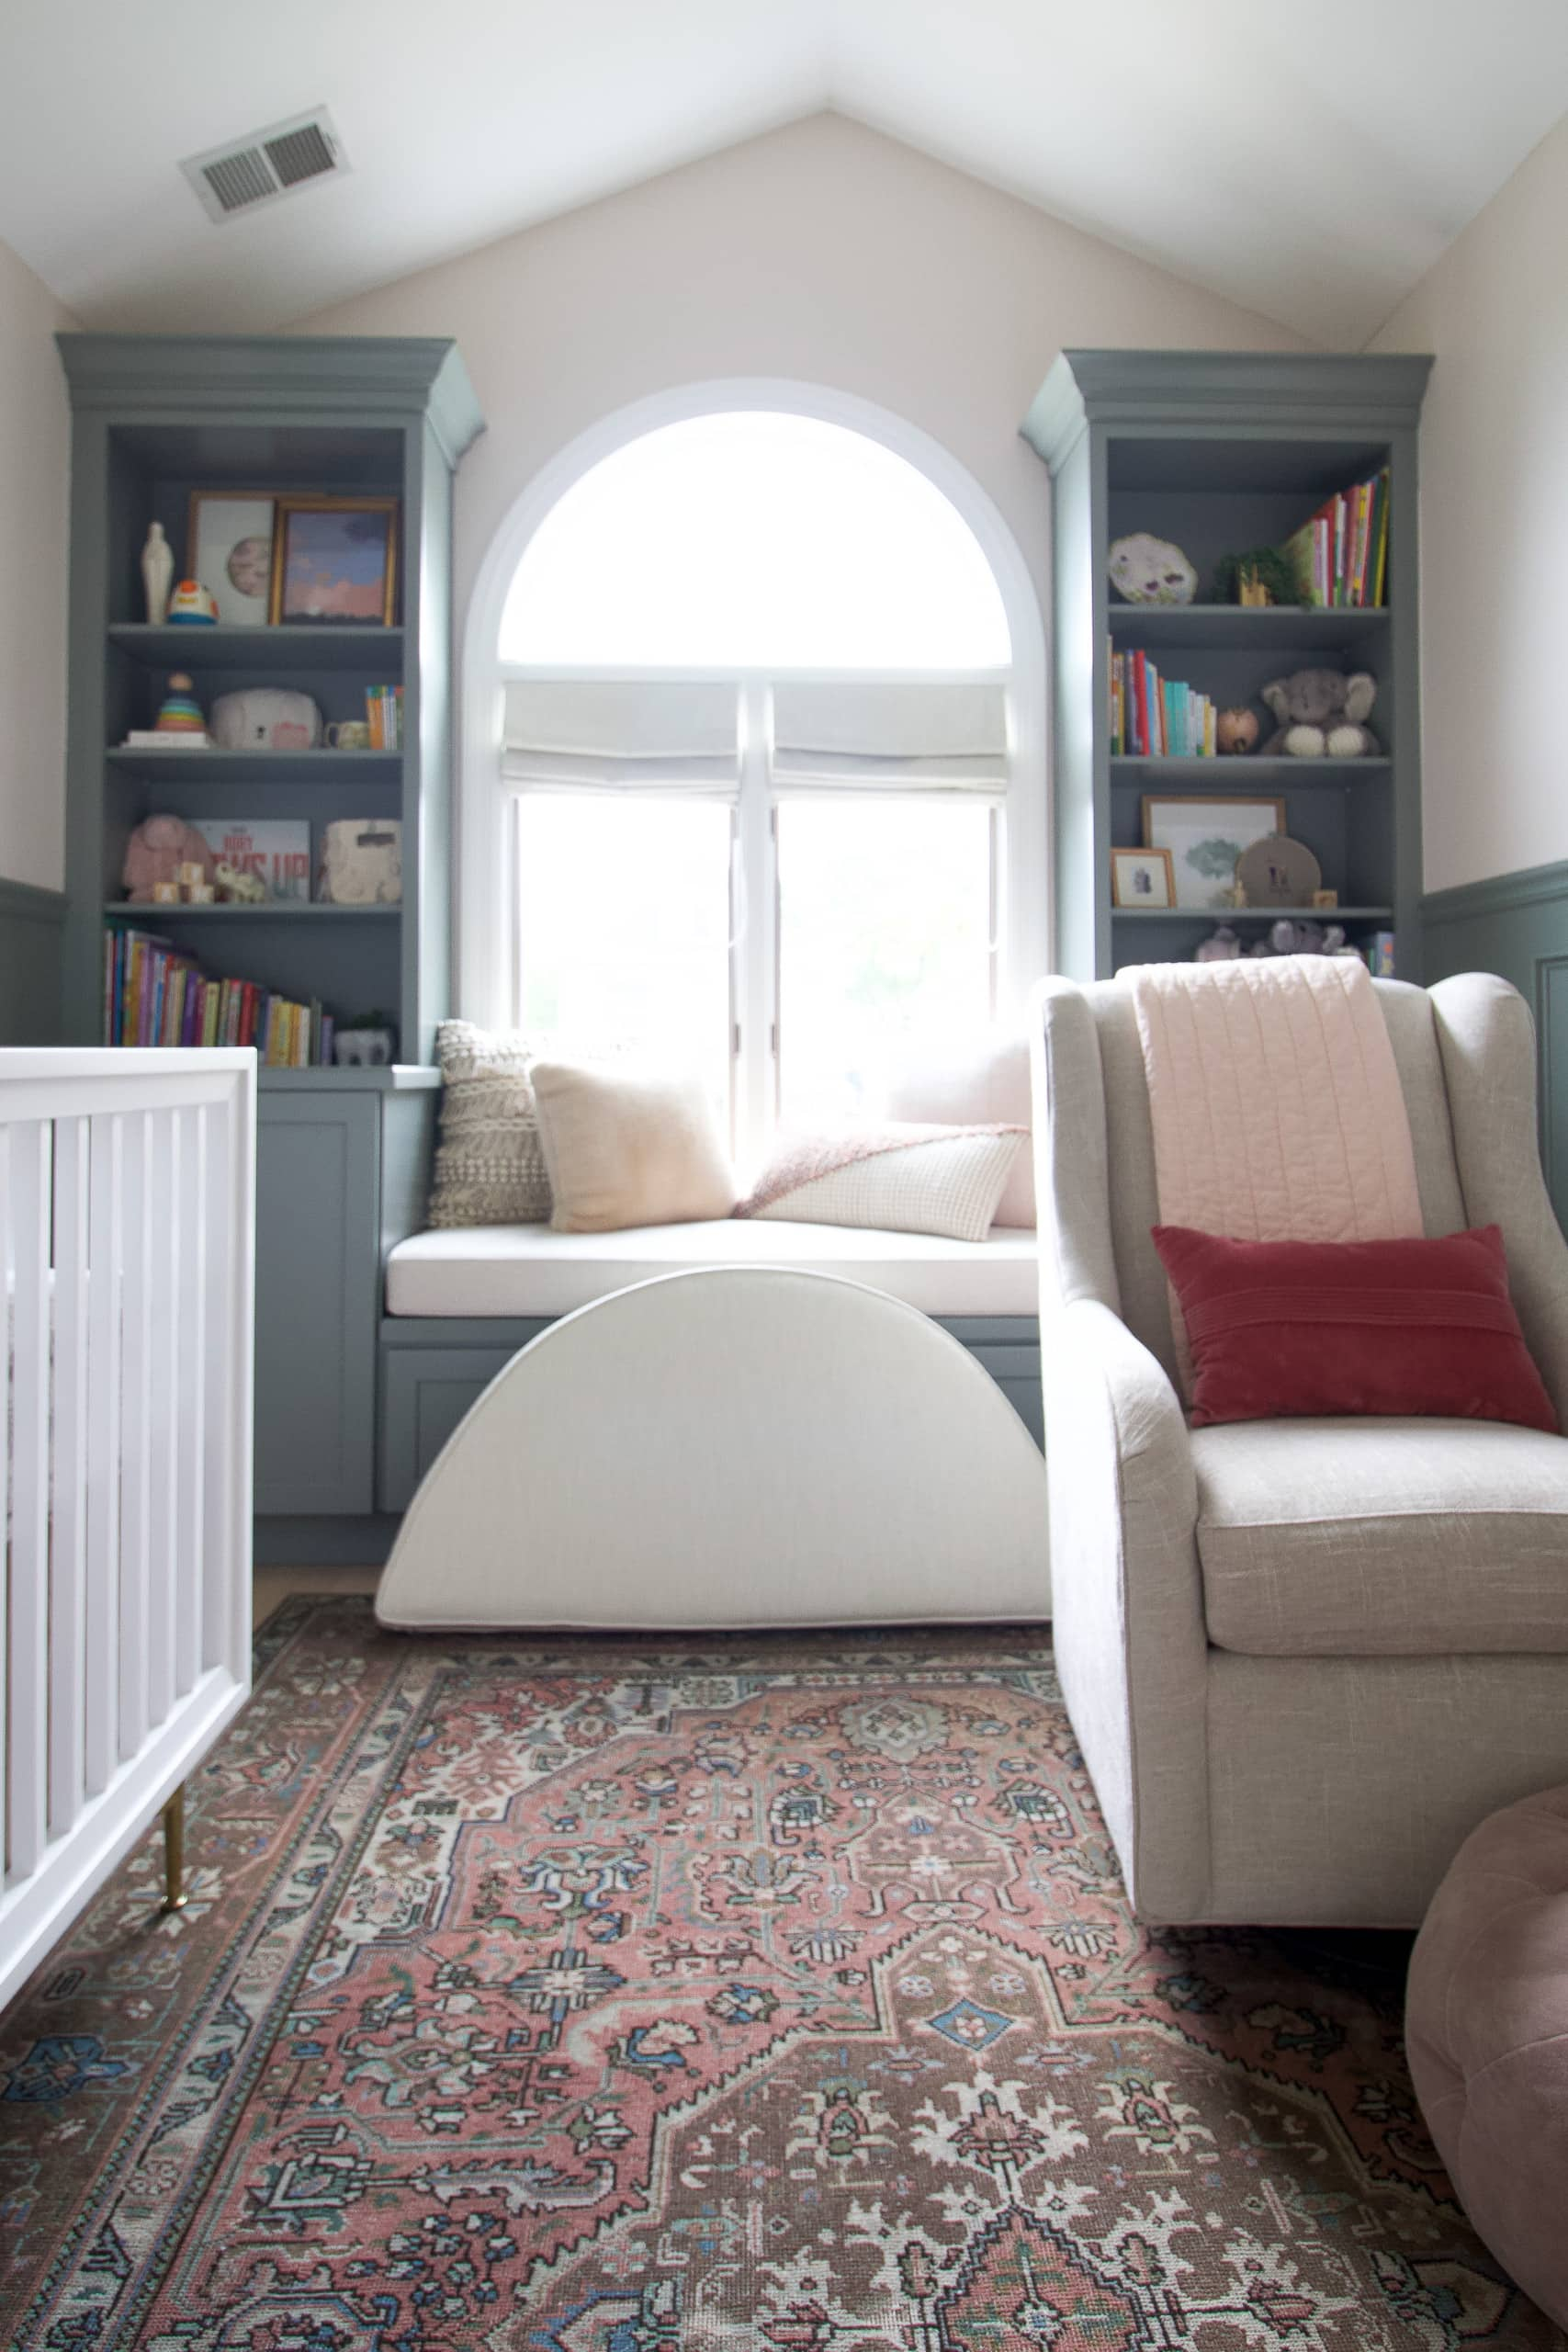 Use a pillow to cover the window in an arched window